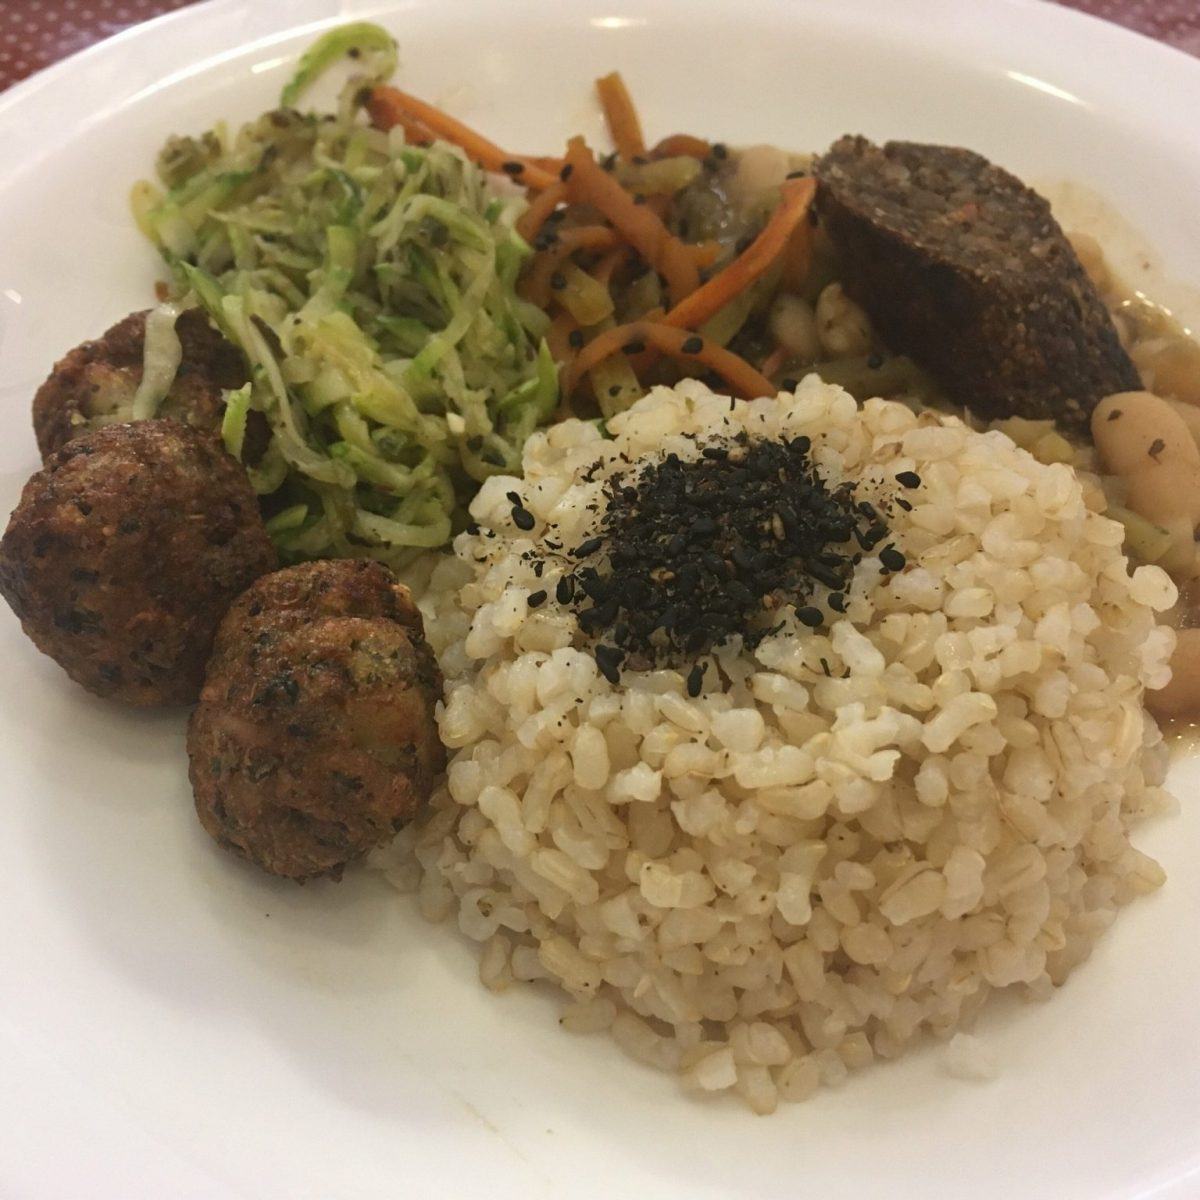 Healthy Vegan Brazilian Food at Brota Primavera in Sao Paulo